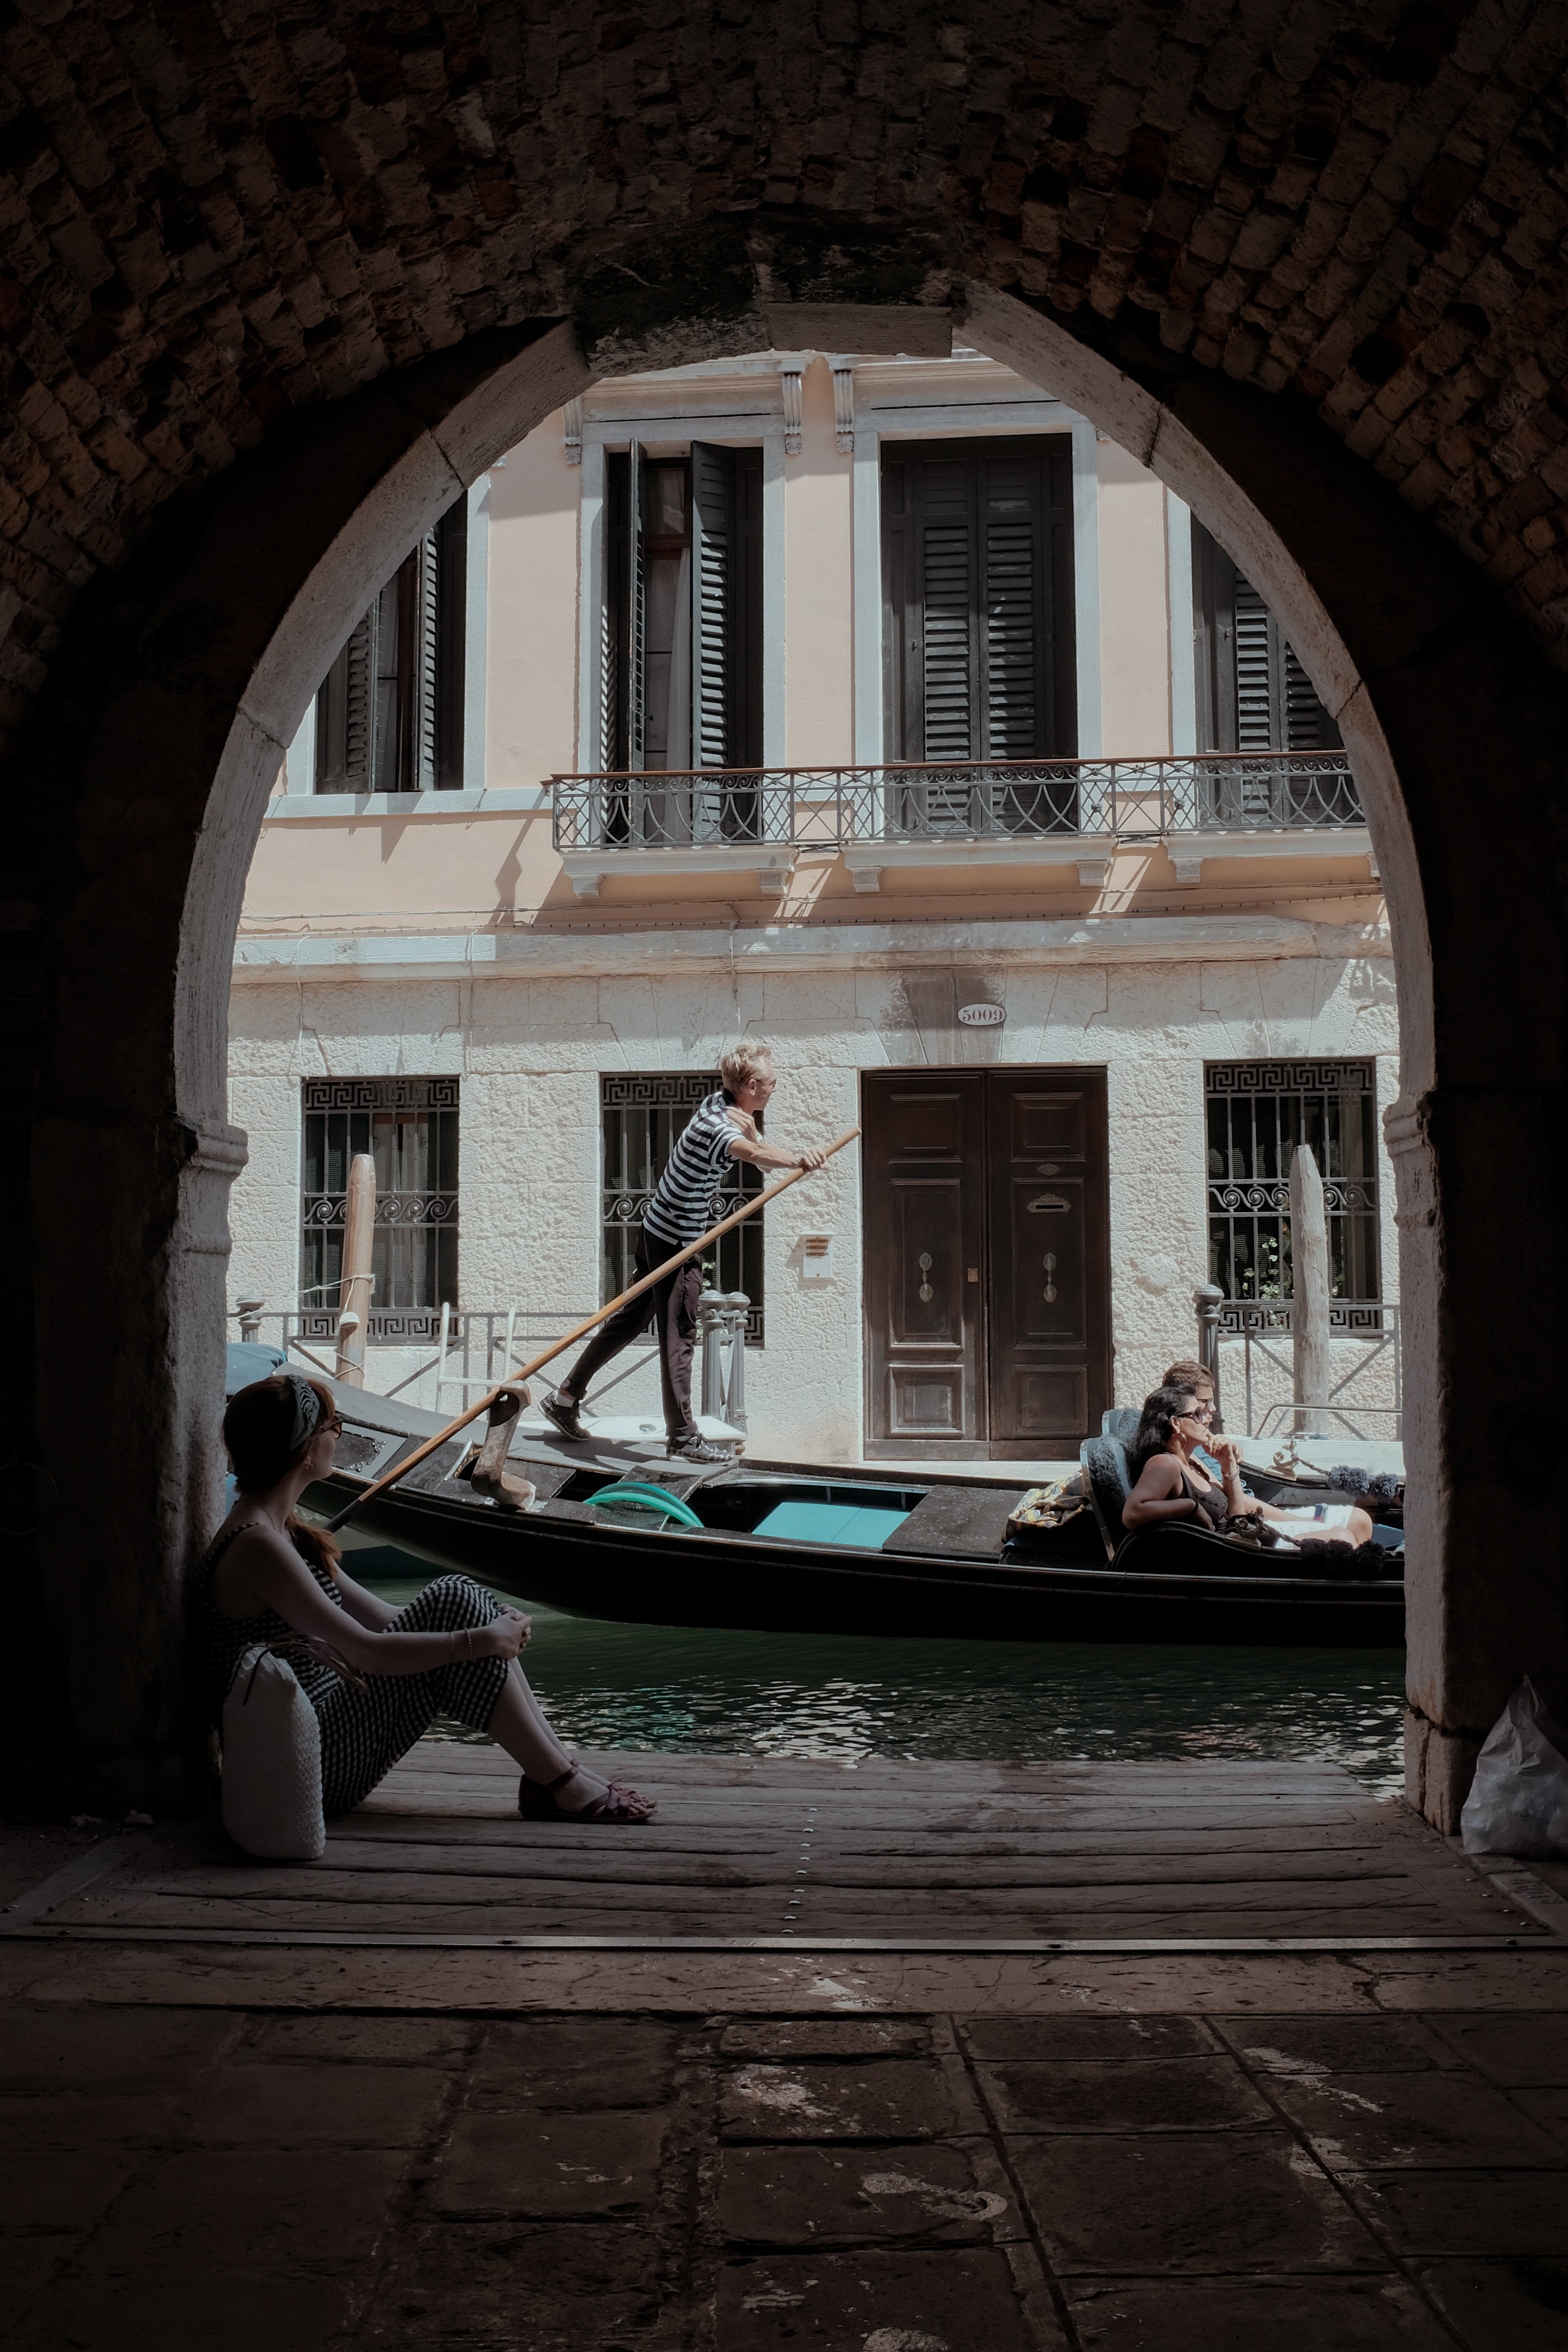 person rowing on gondola boat in Venice Canal